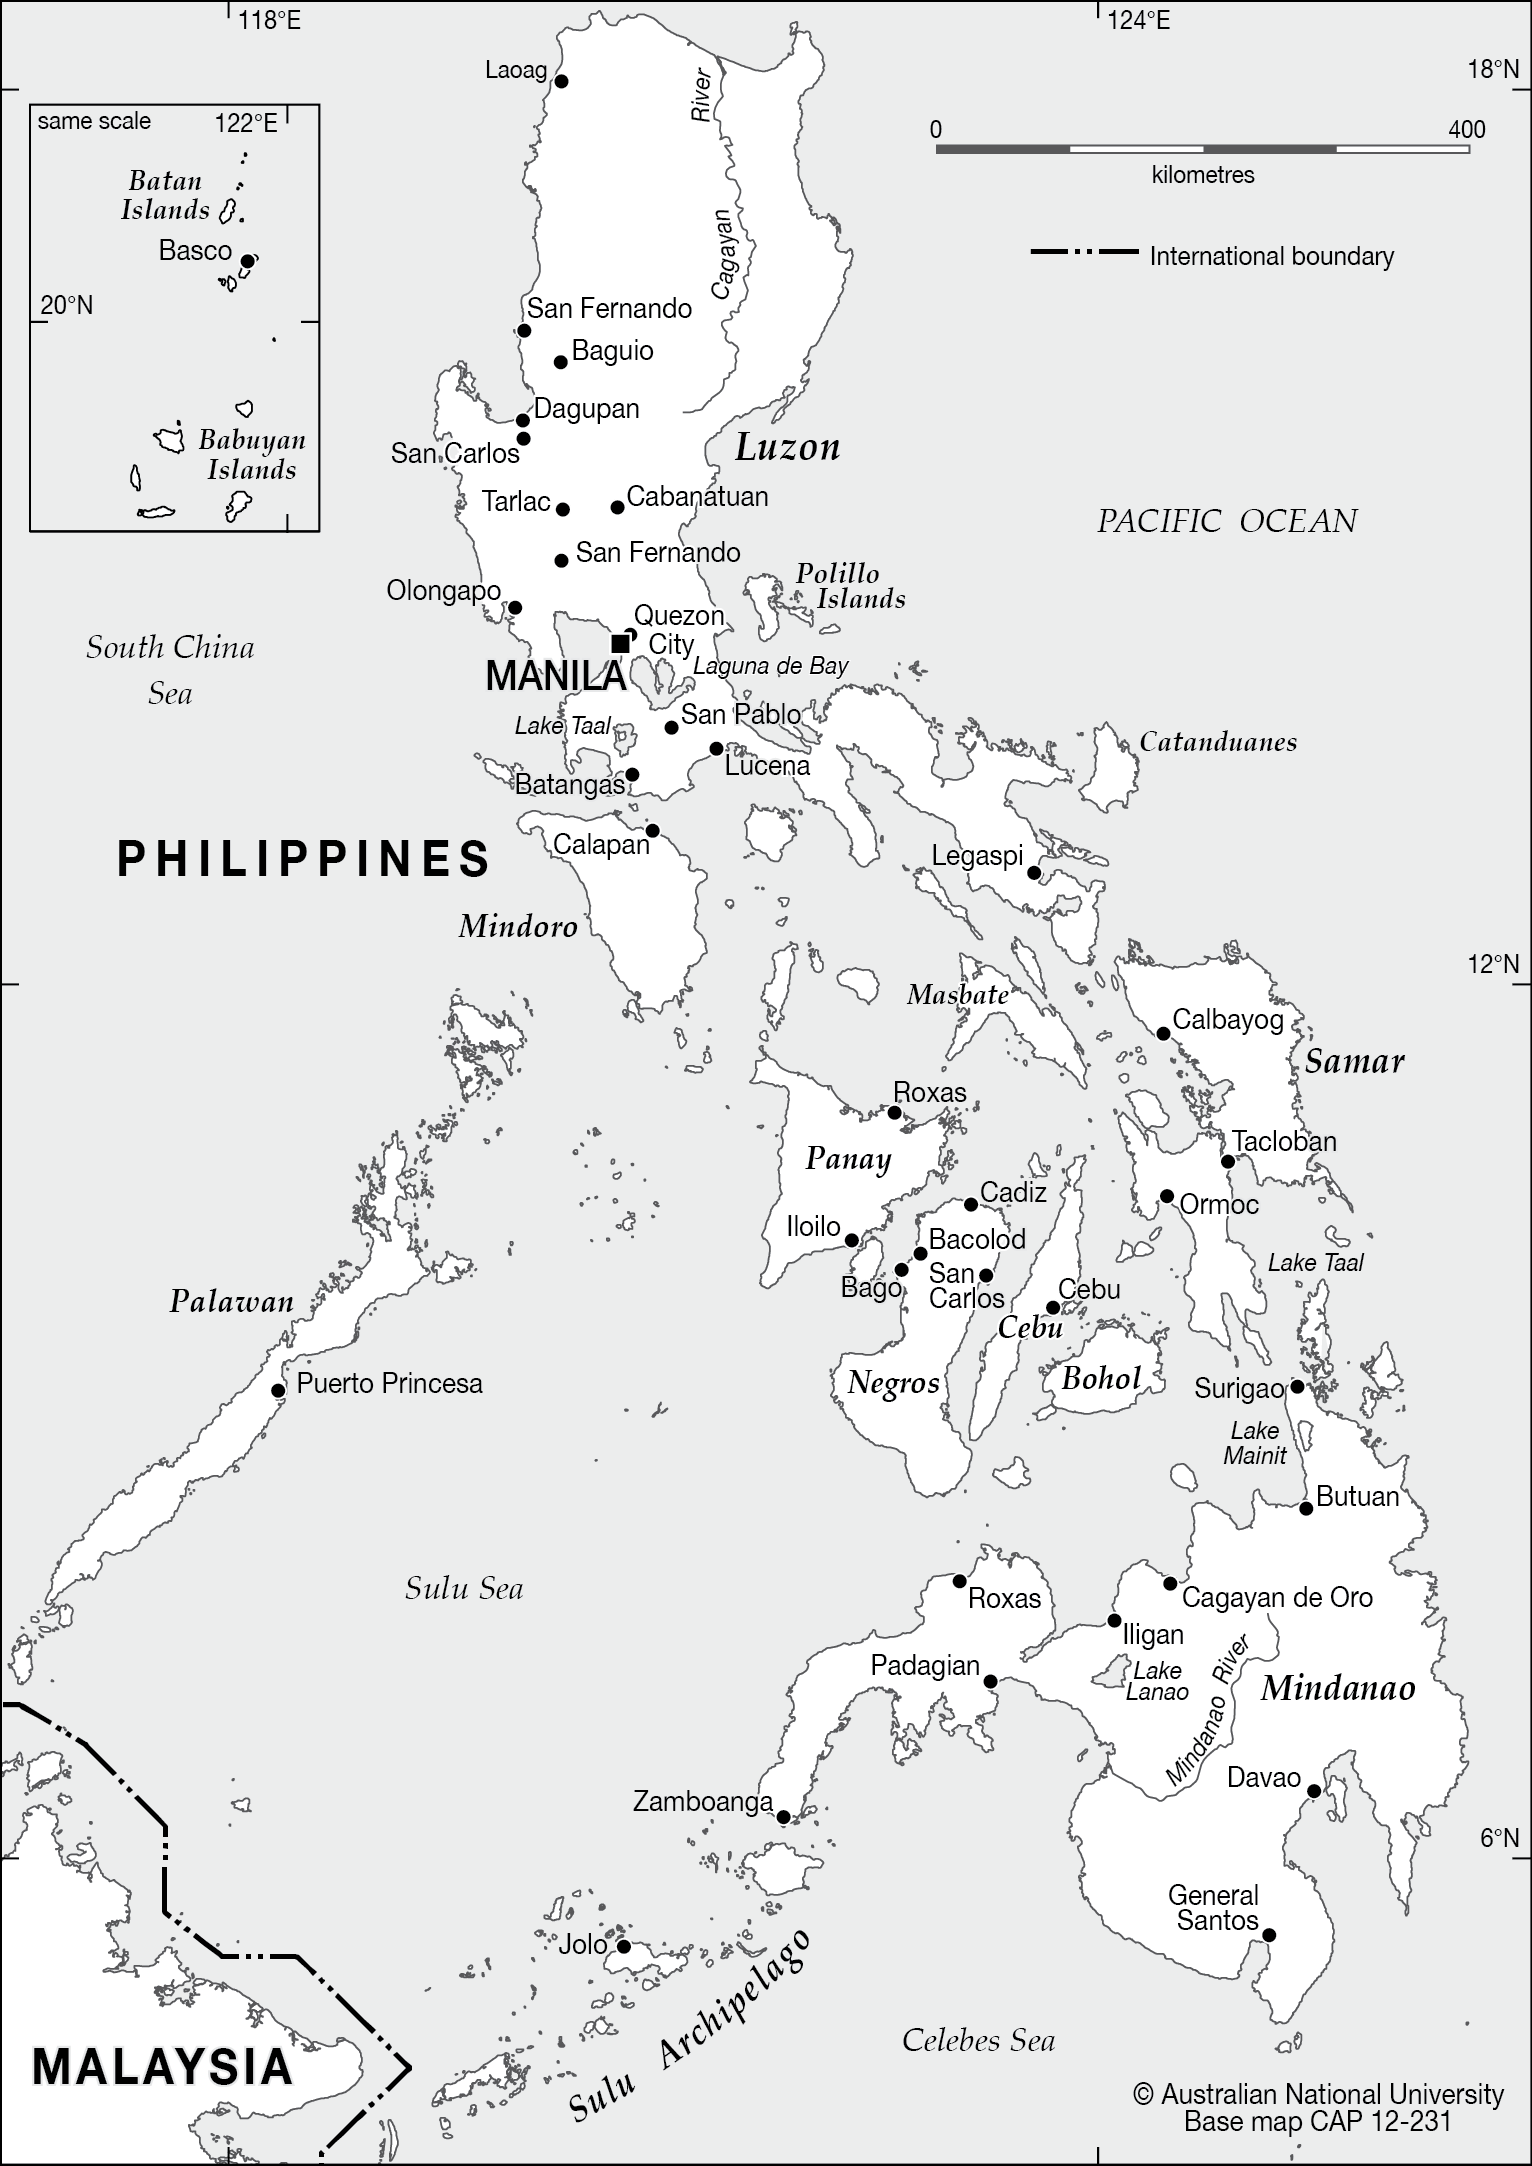 Philippines Map Black And White.Philippines Base Cartogis Services Maps Online Anu